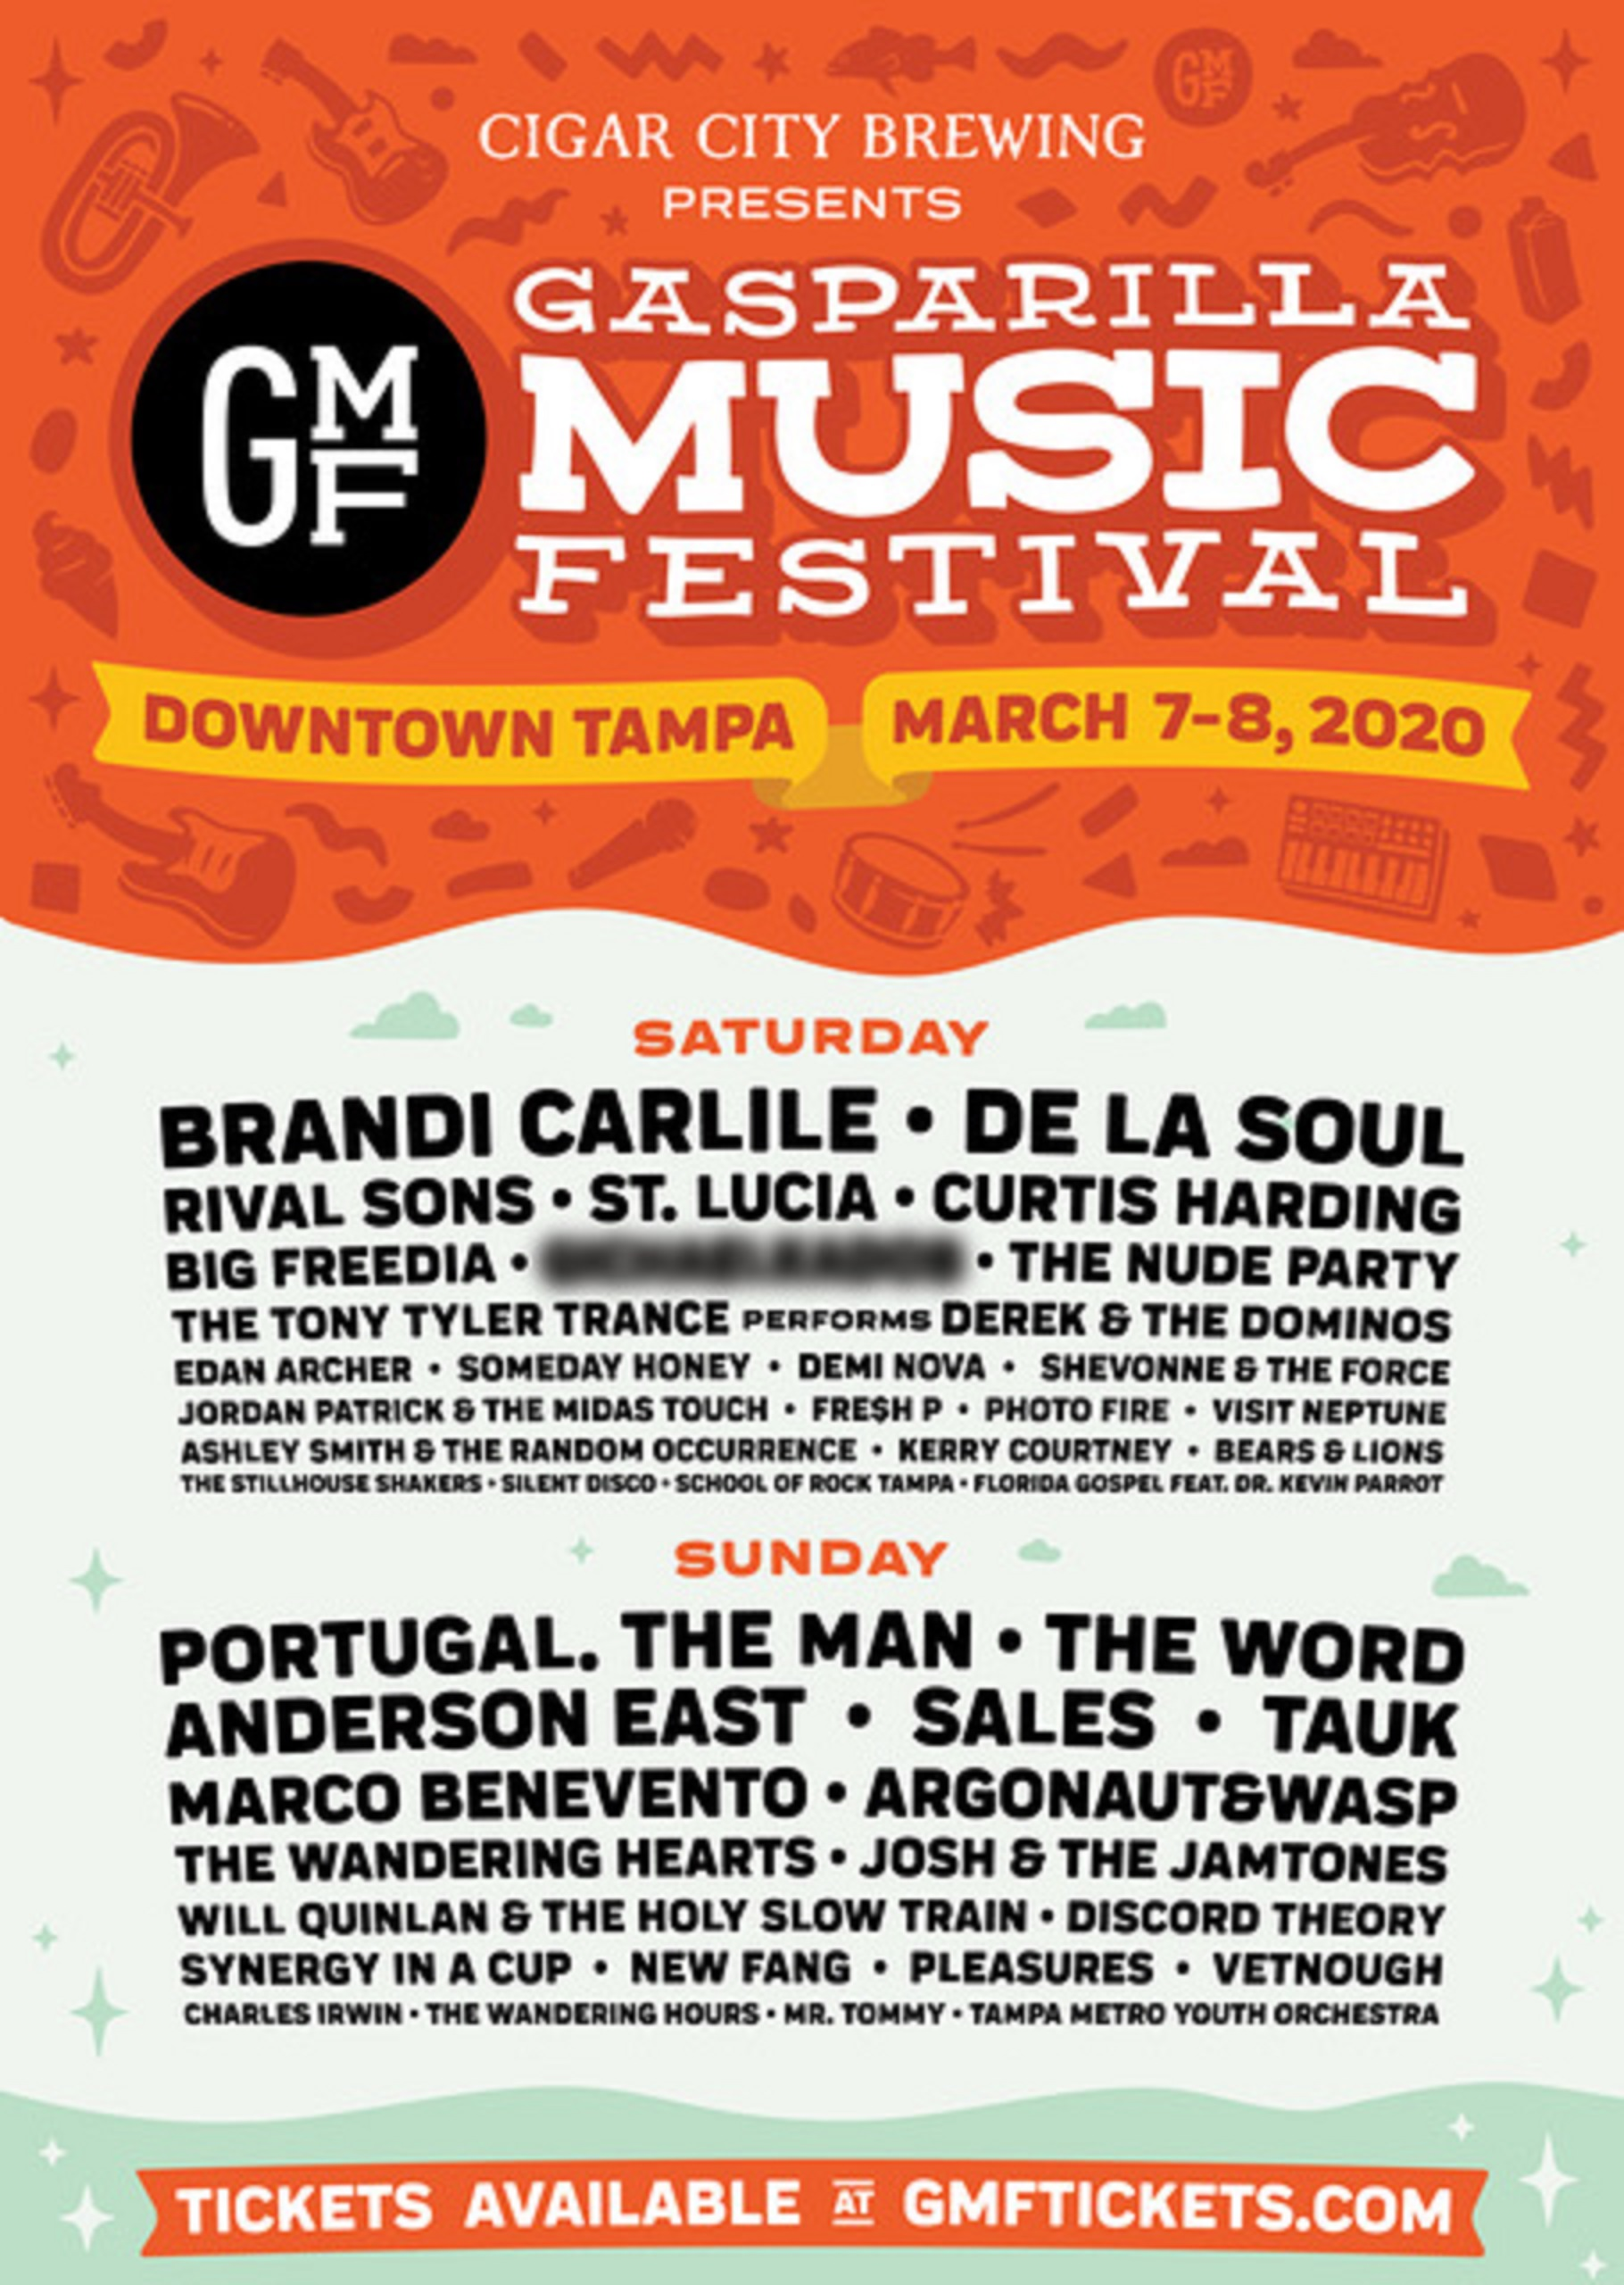 Tampa's Gasparilla Music Festival Releases Lineup and Performance Times